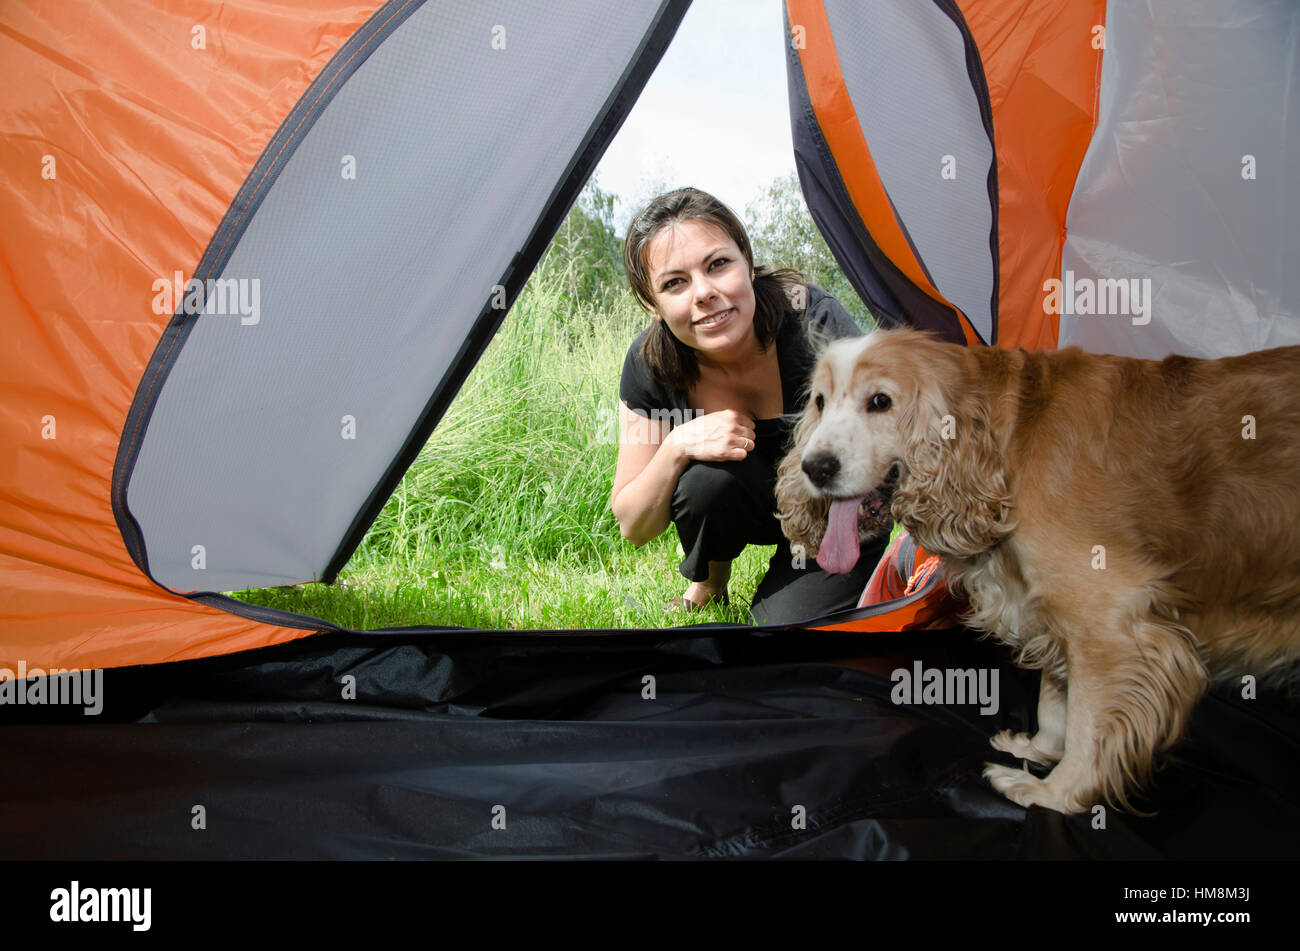 Woman Watching Inside A Tent With Her Cute Cocker Spaniel Dog In